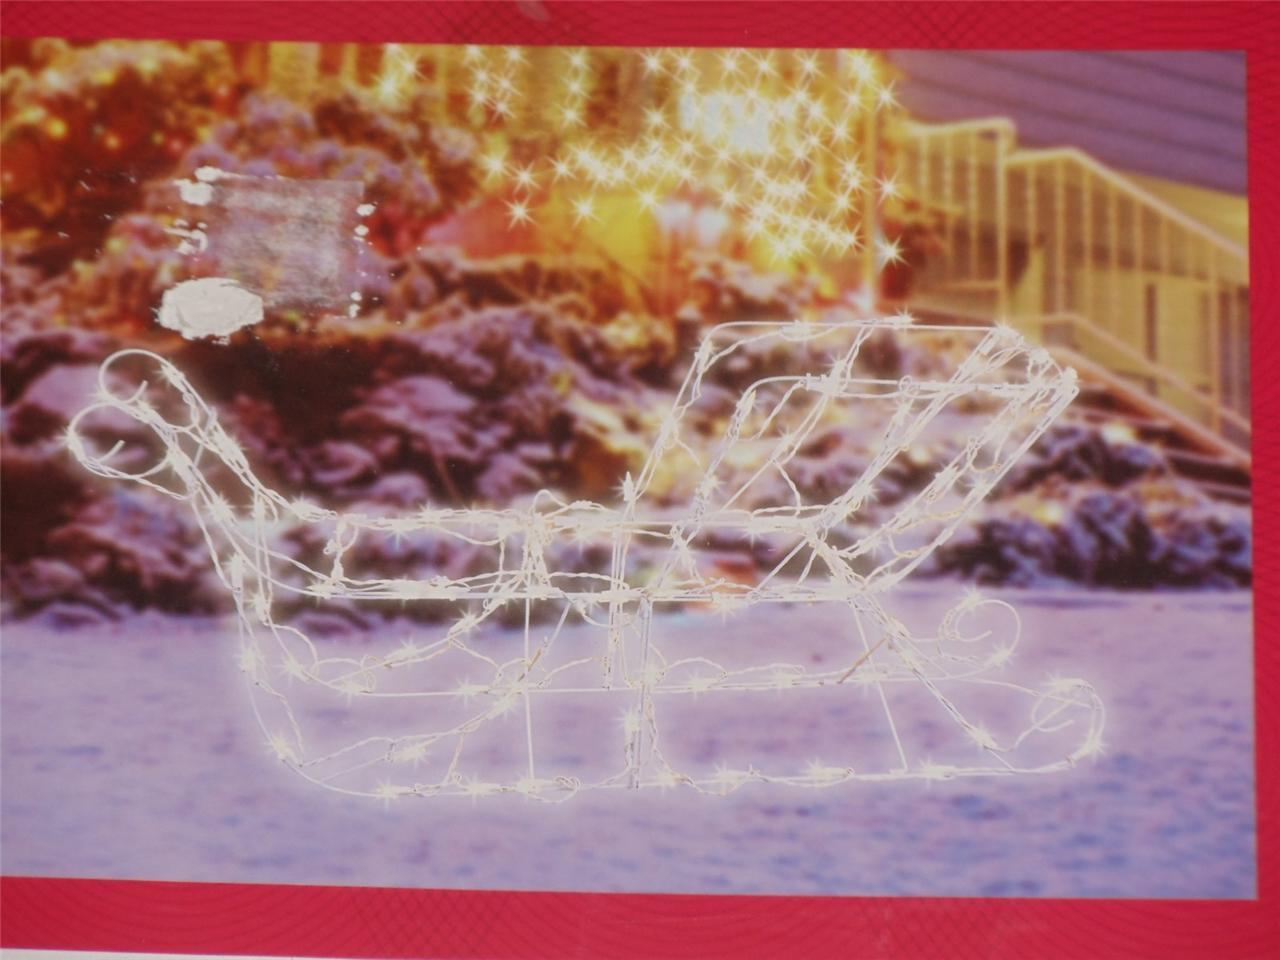 Http Ebay Com Itm Lighted Sculpture 42 Sleigh Sled Christmas Indoor Outdoor Decoration Lights New 291014645784